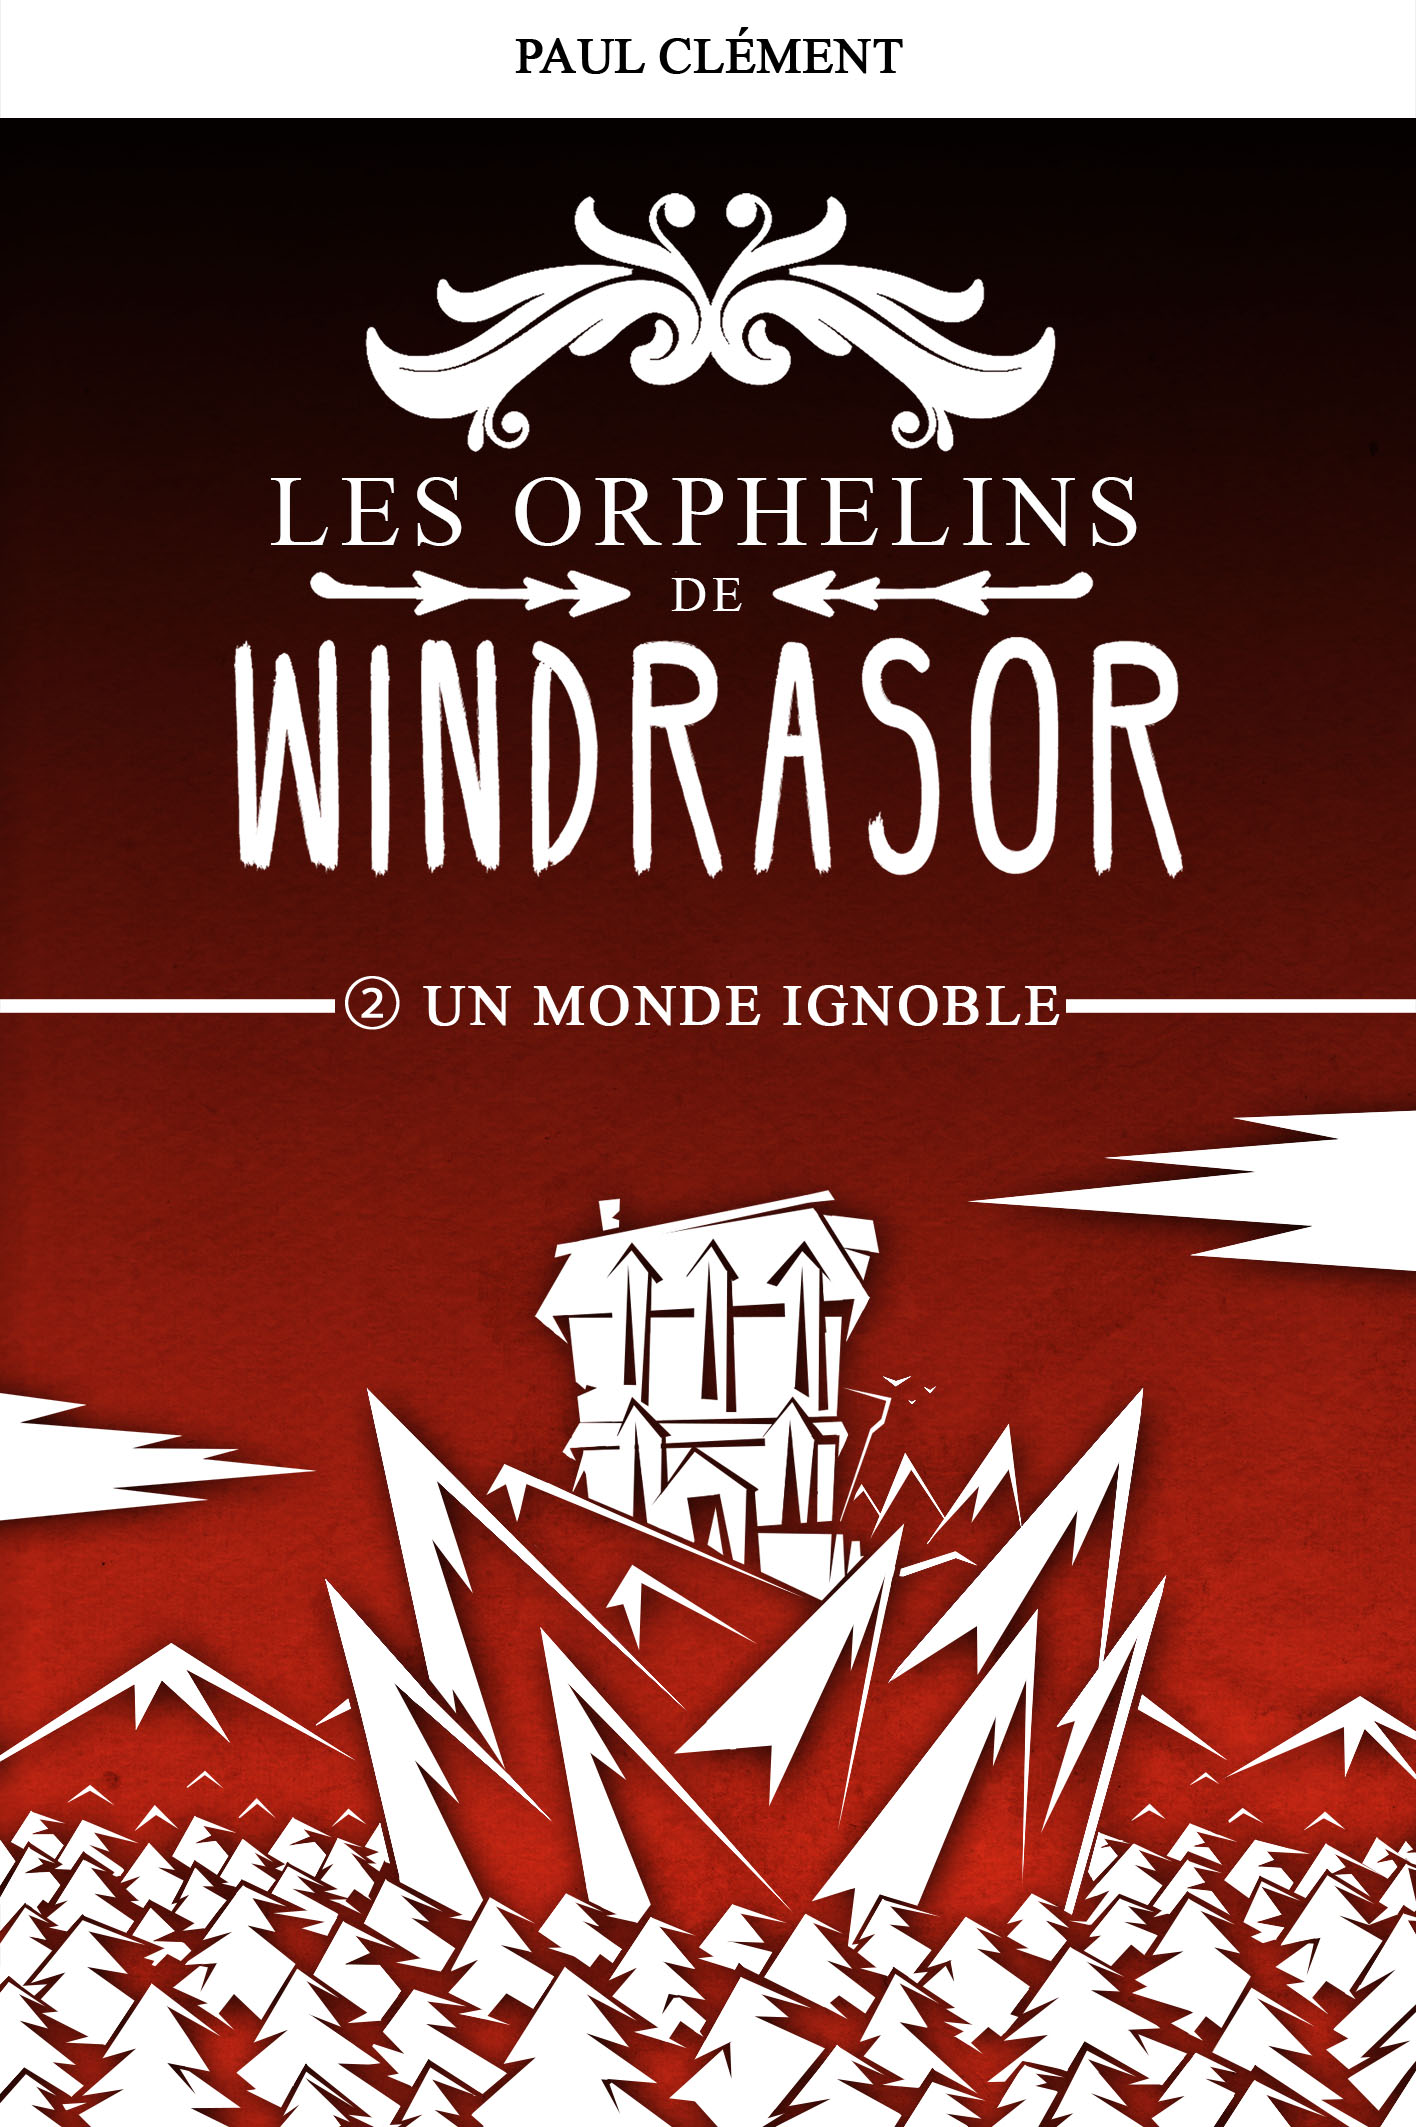 Les Orphelins de Windrasor Episode 2 : Un Monde Ignoble